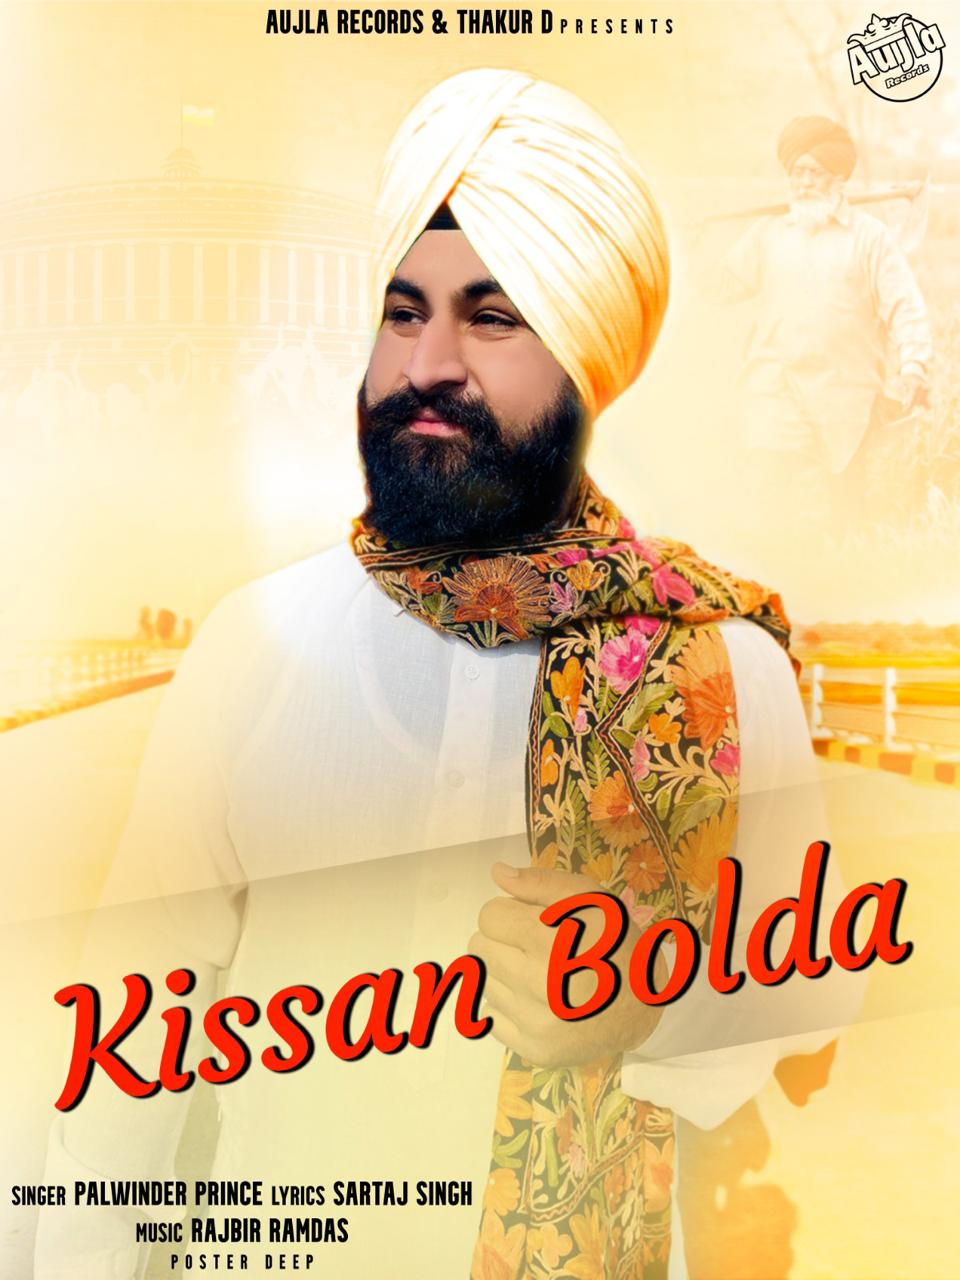 Kissan Bolda Mp3 Song Palwinder Prince Download New Punjabi Song